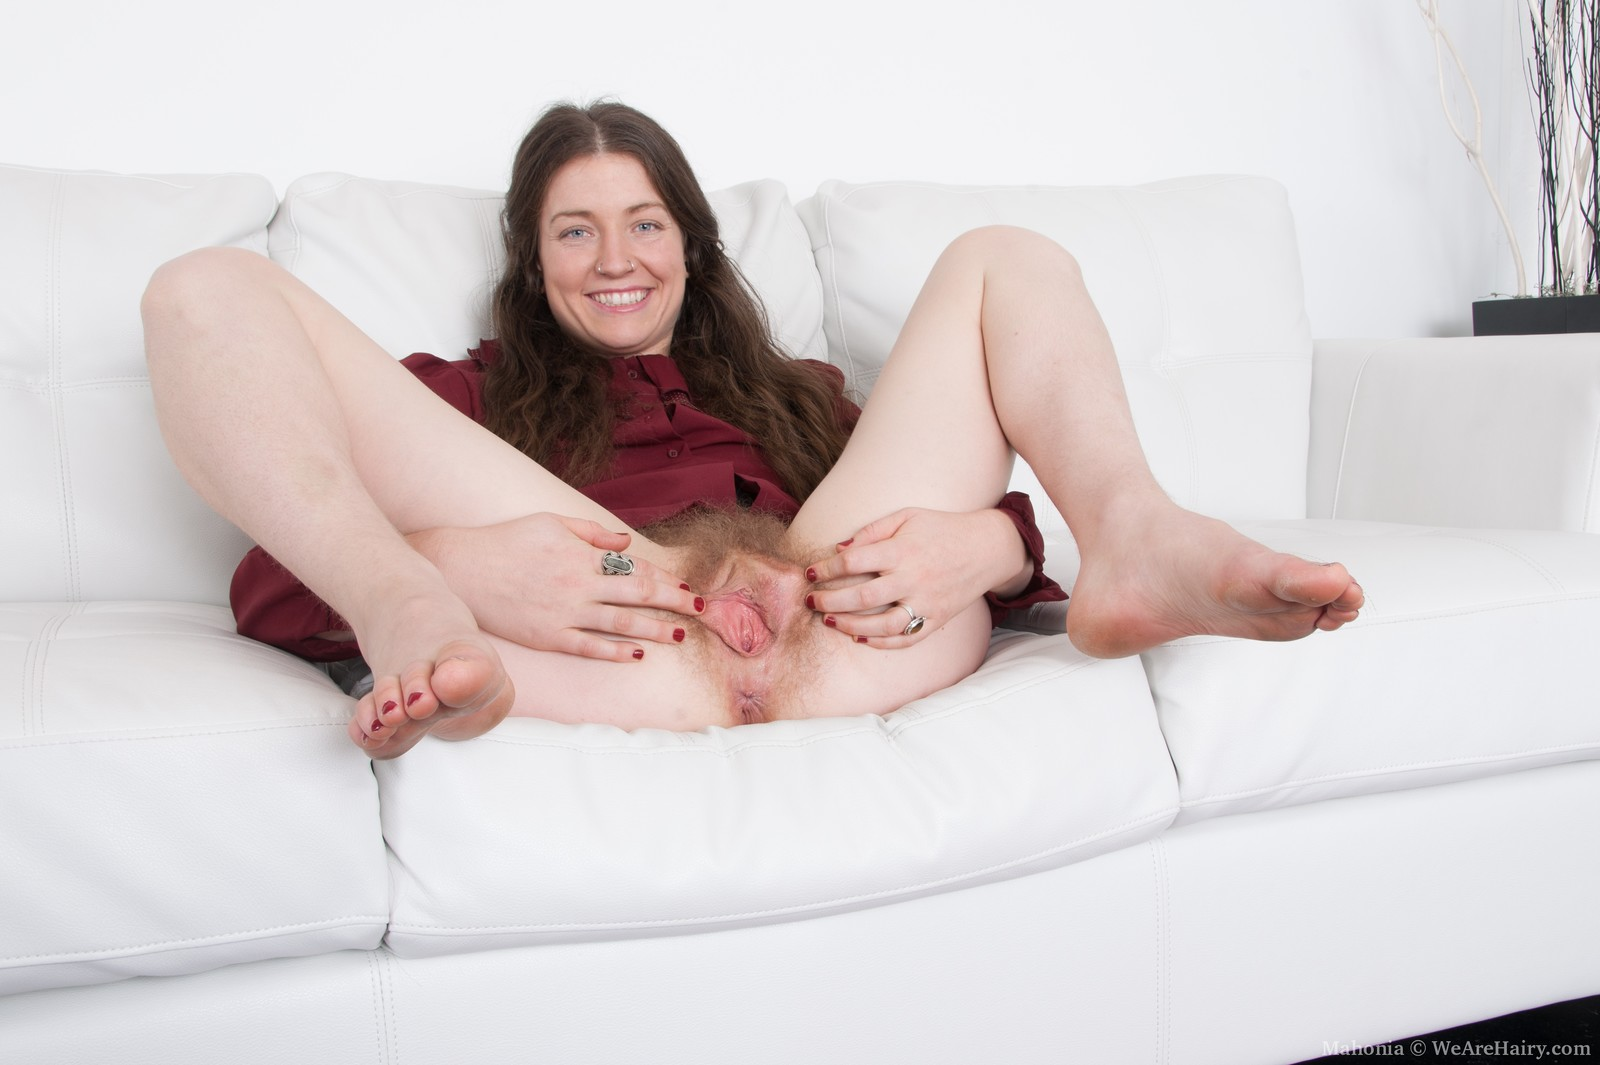 Short haired 18 year old sucks dick and gets pounded 9